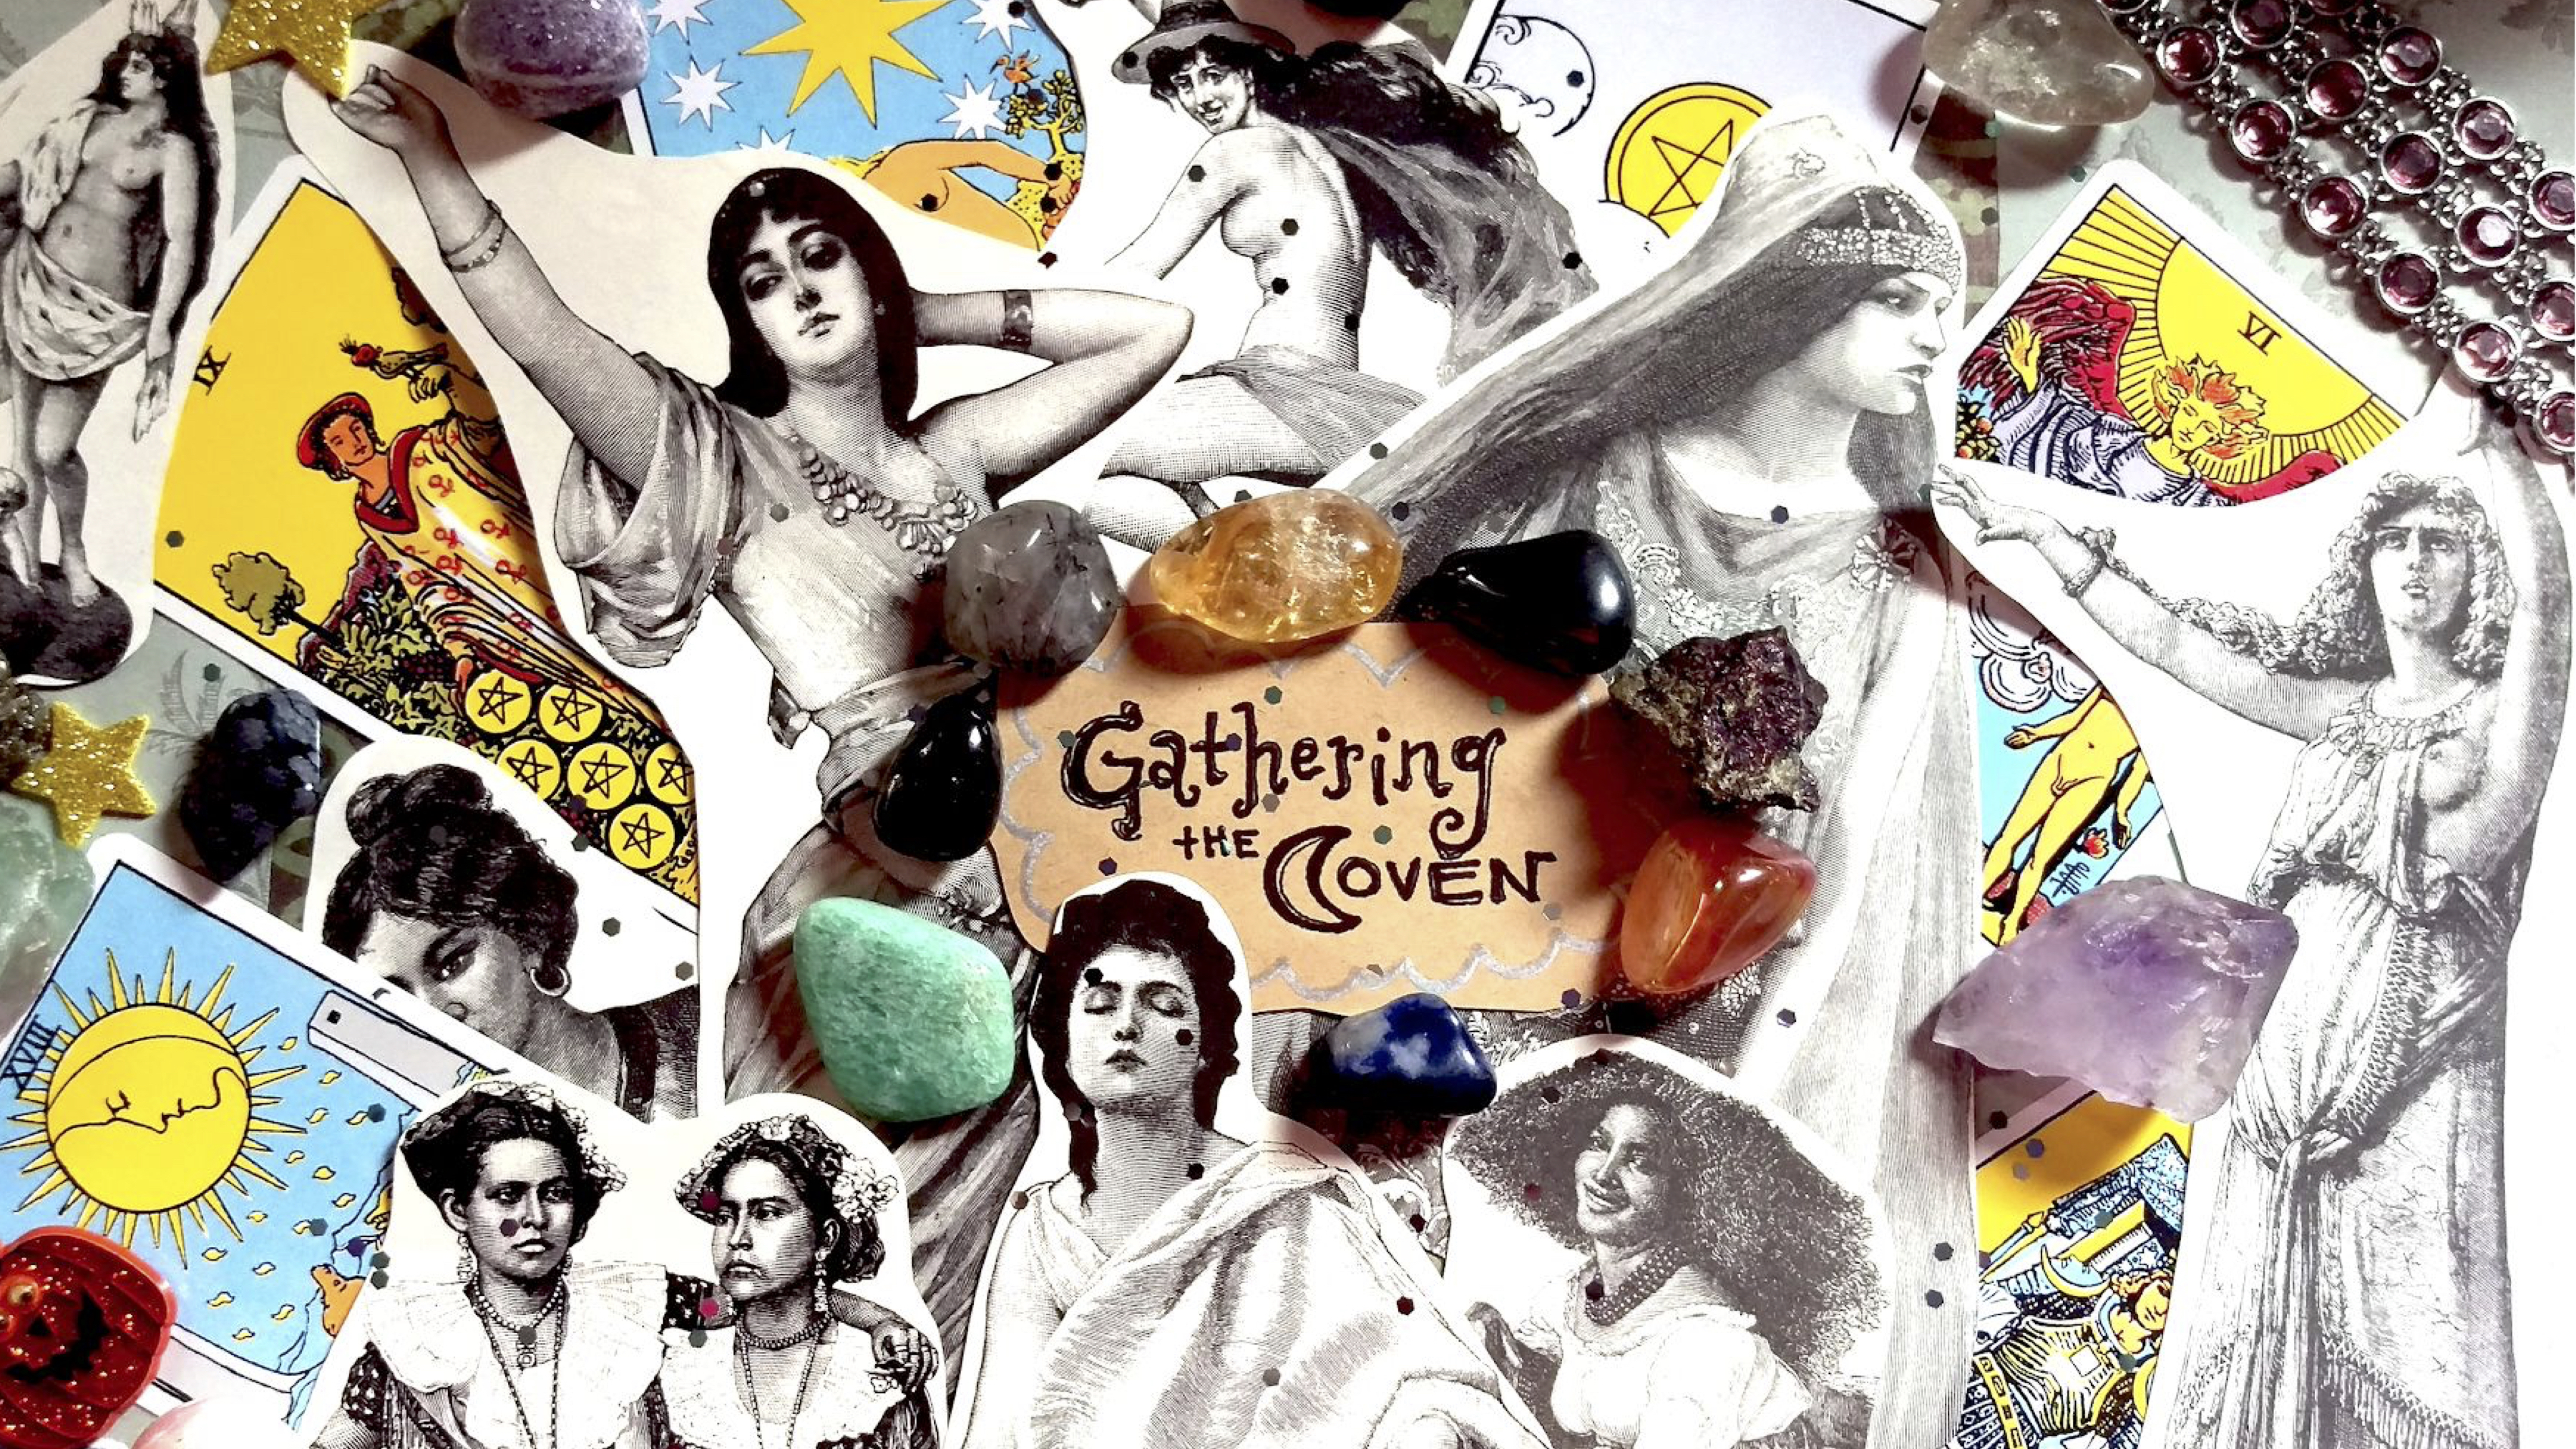 Gathering the Coven